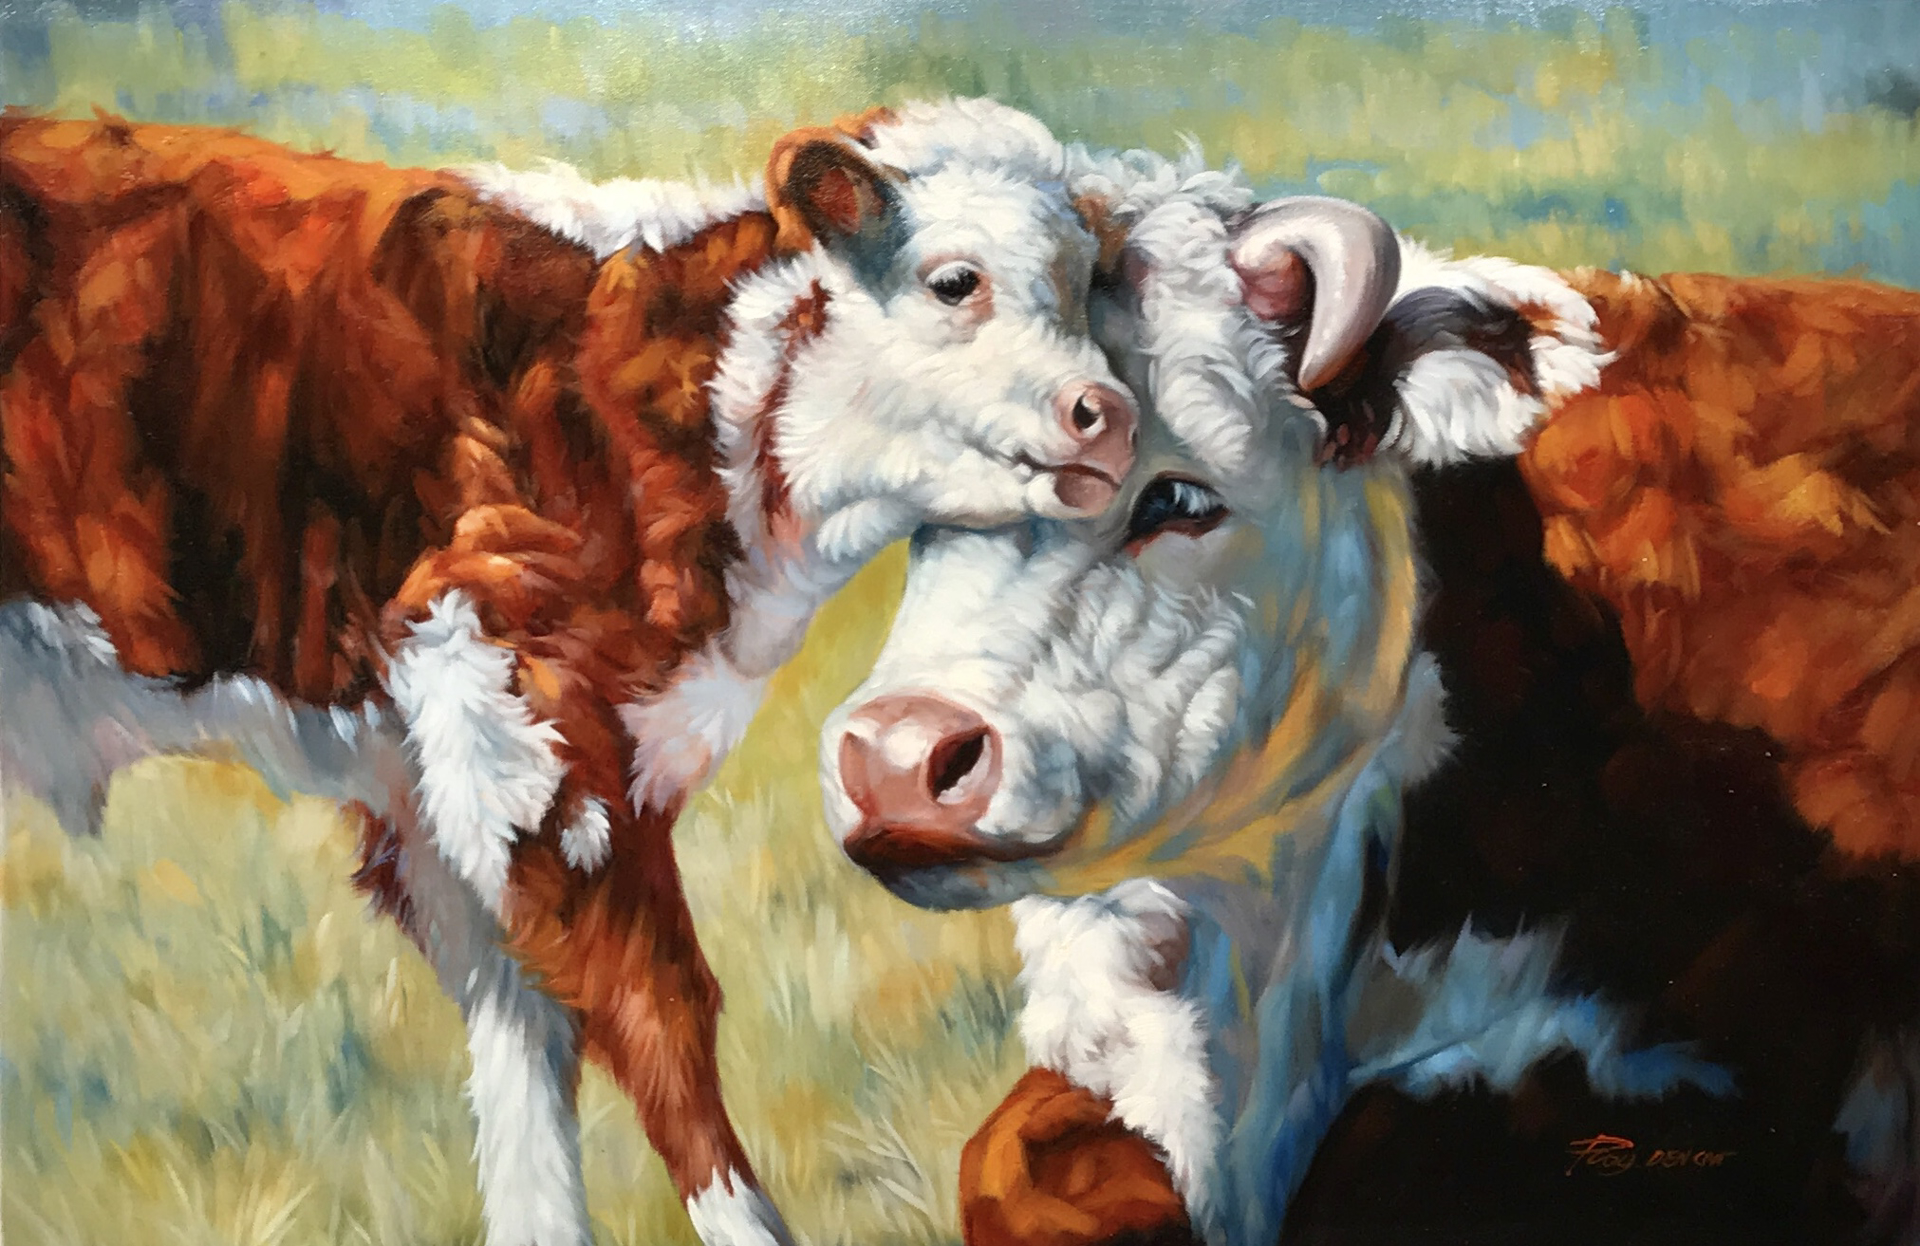 MOTHER AND CALF by ROY DENCAN